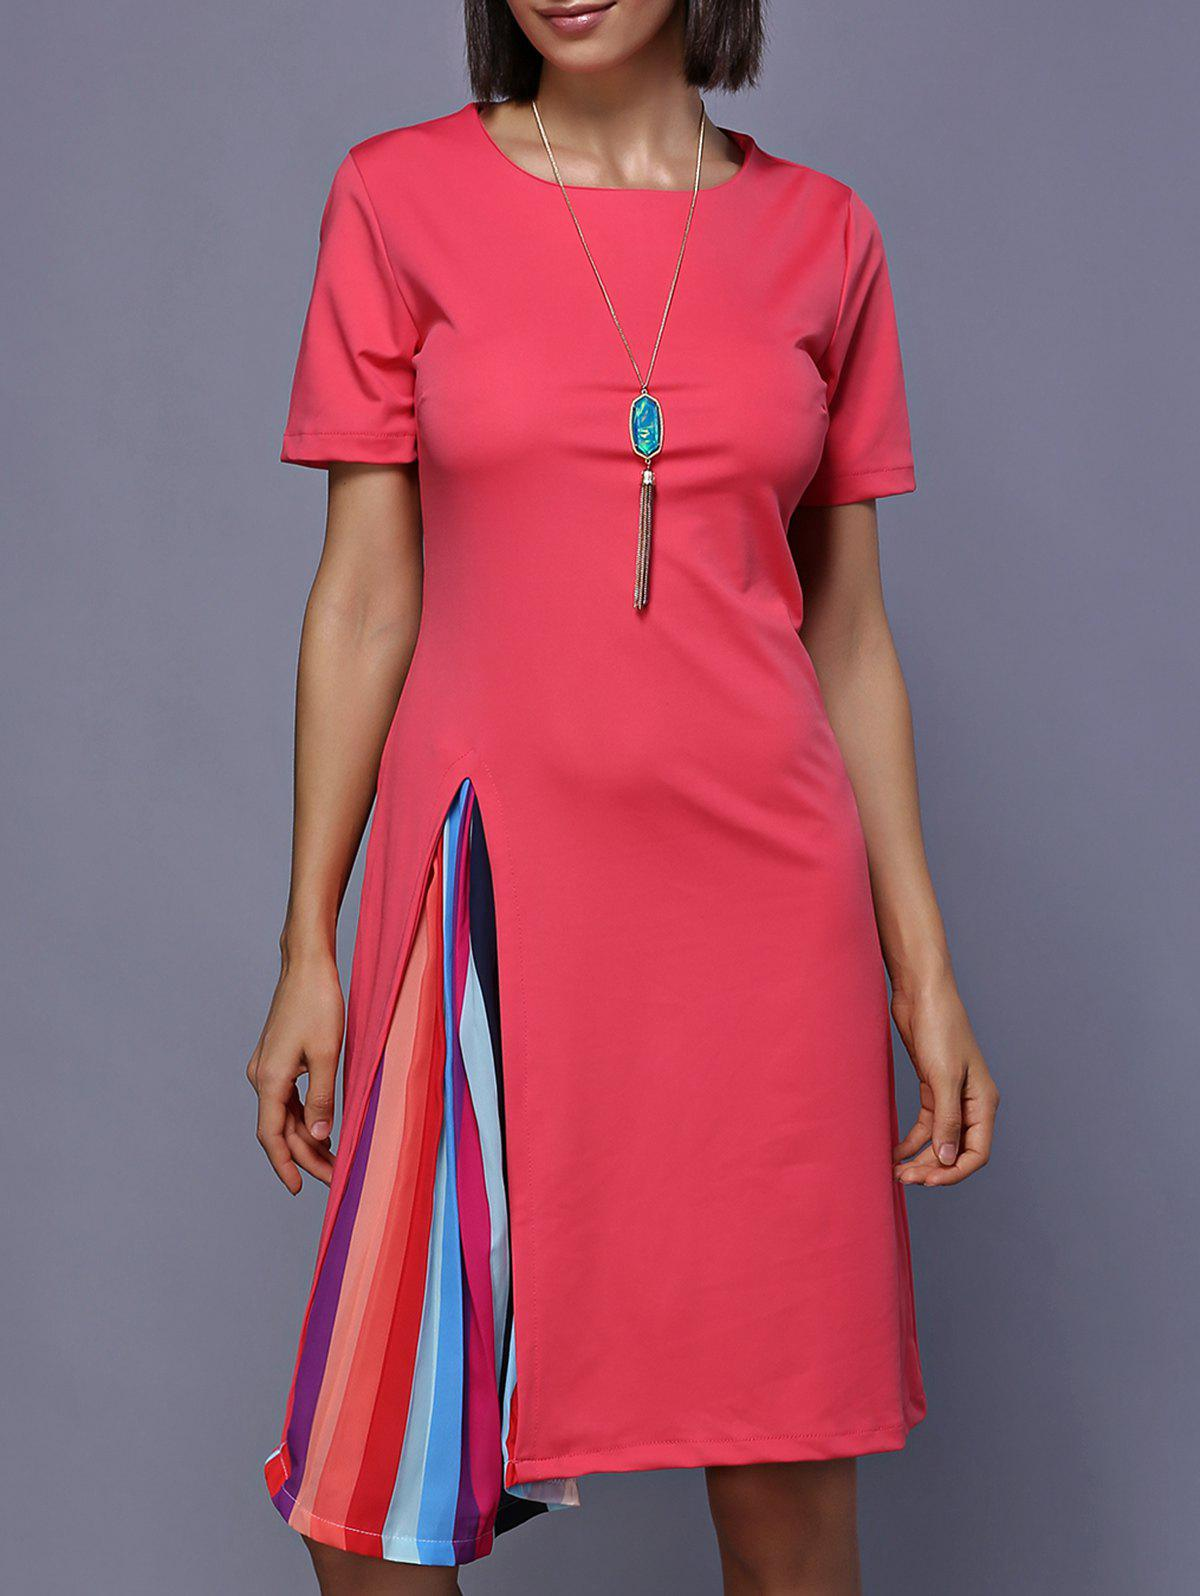 Colorful Splicing Jewel Neck Dress - Rose Rouge L